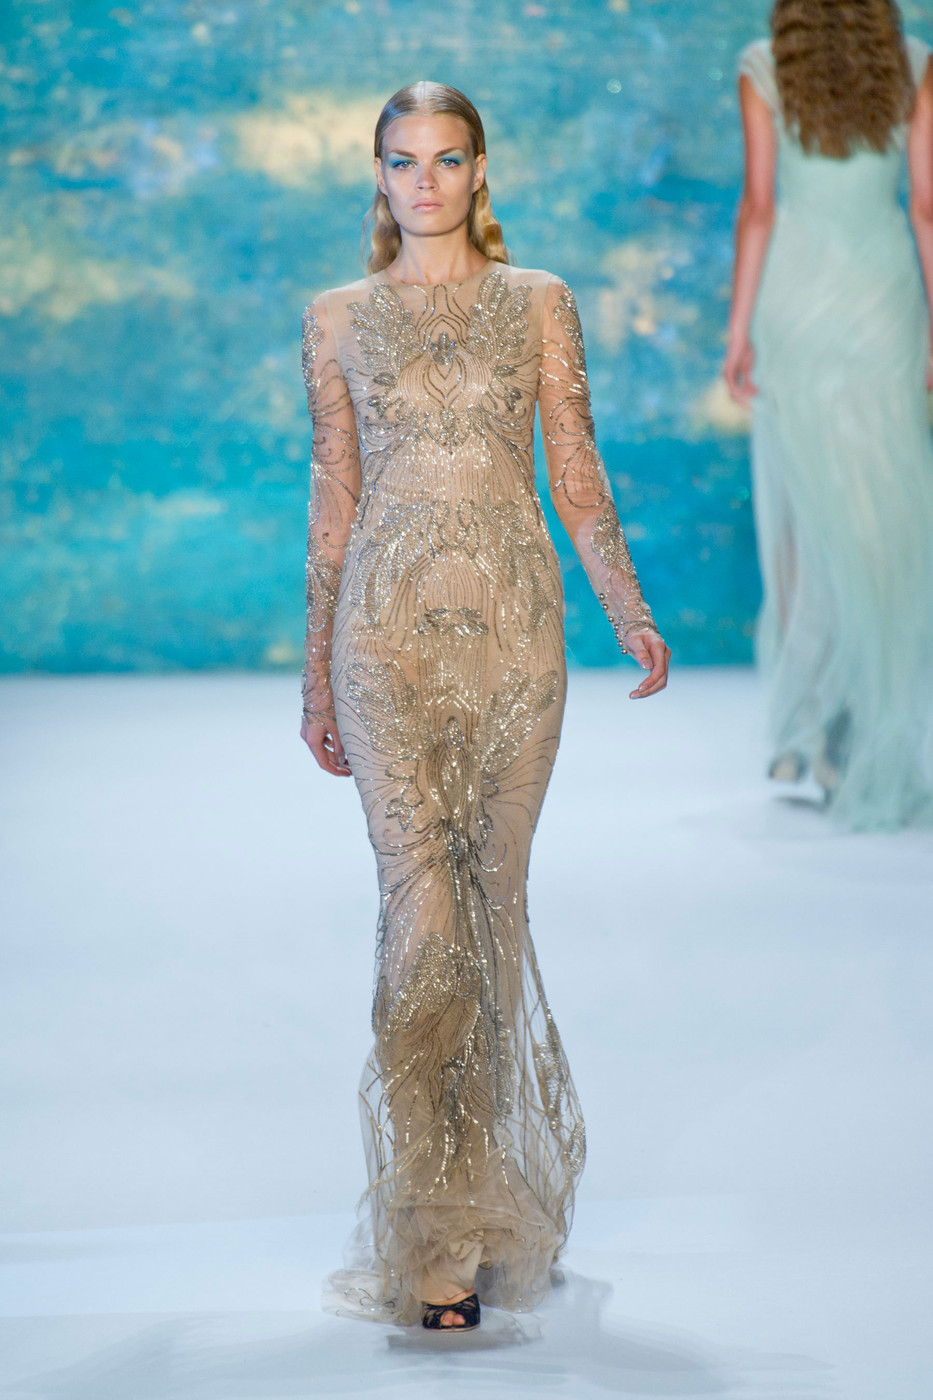 Best Spring 2013 Runway Gowns - Monique Lhuillier - The Most ...